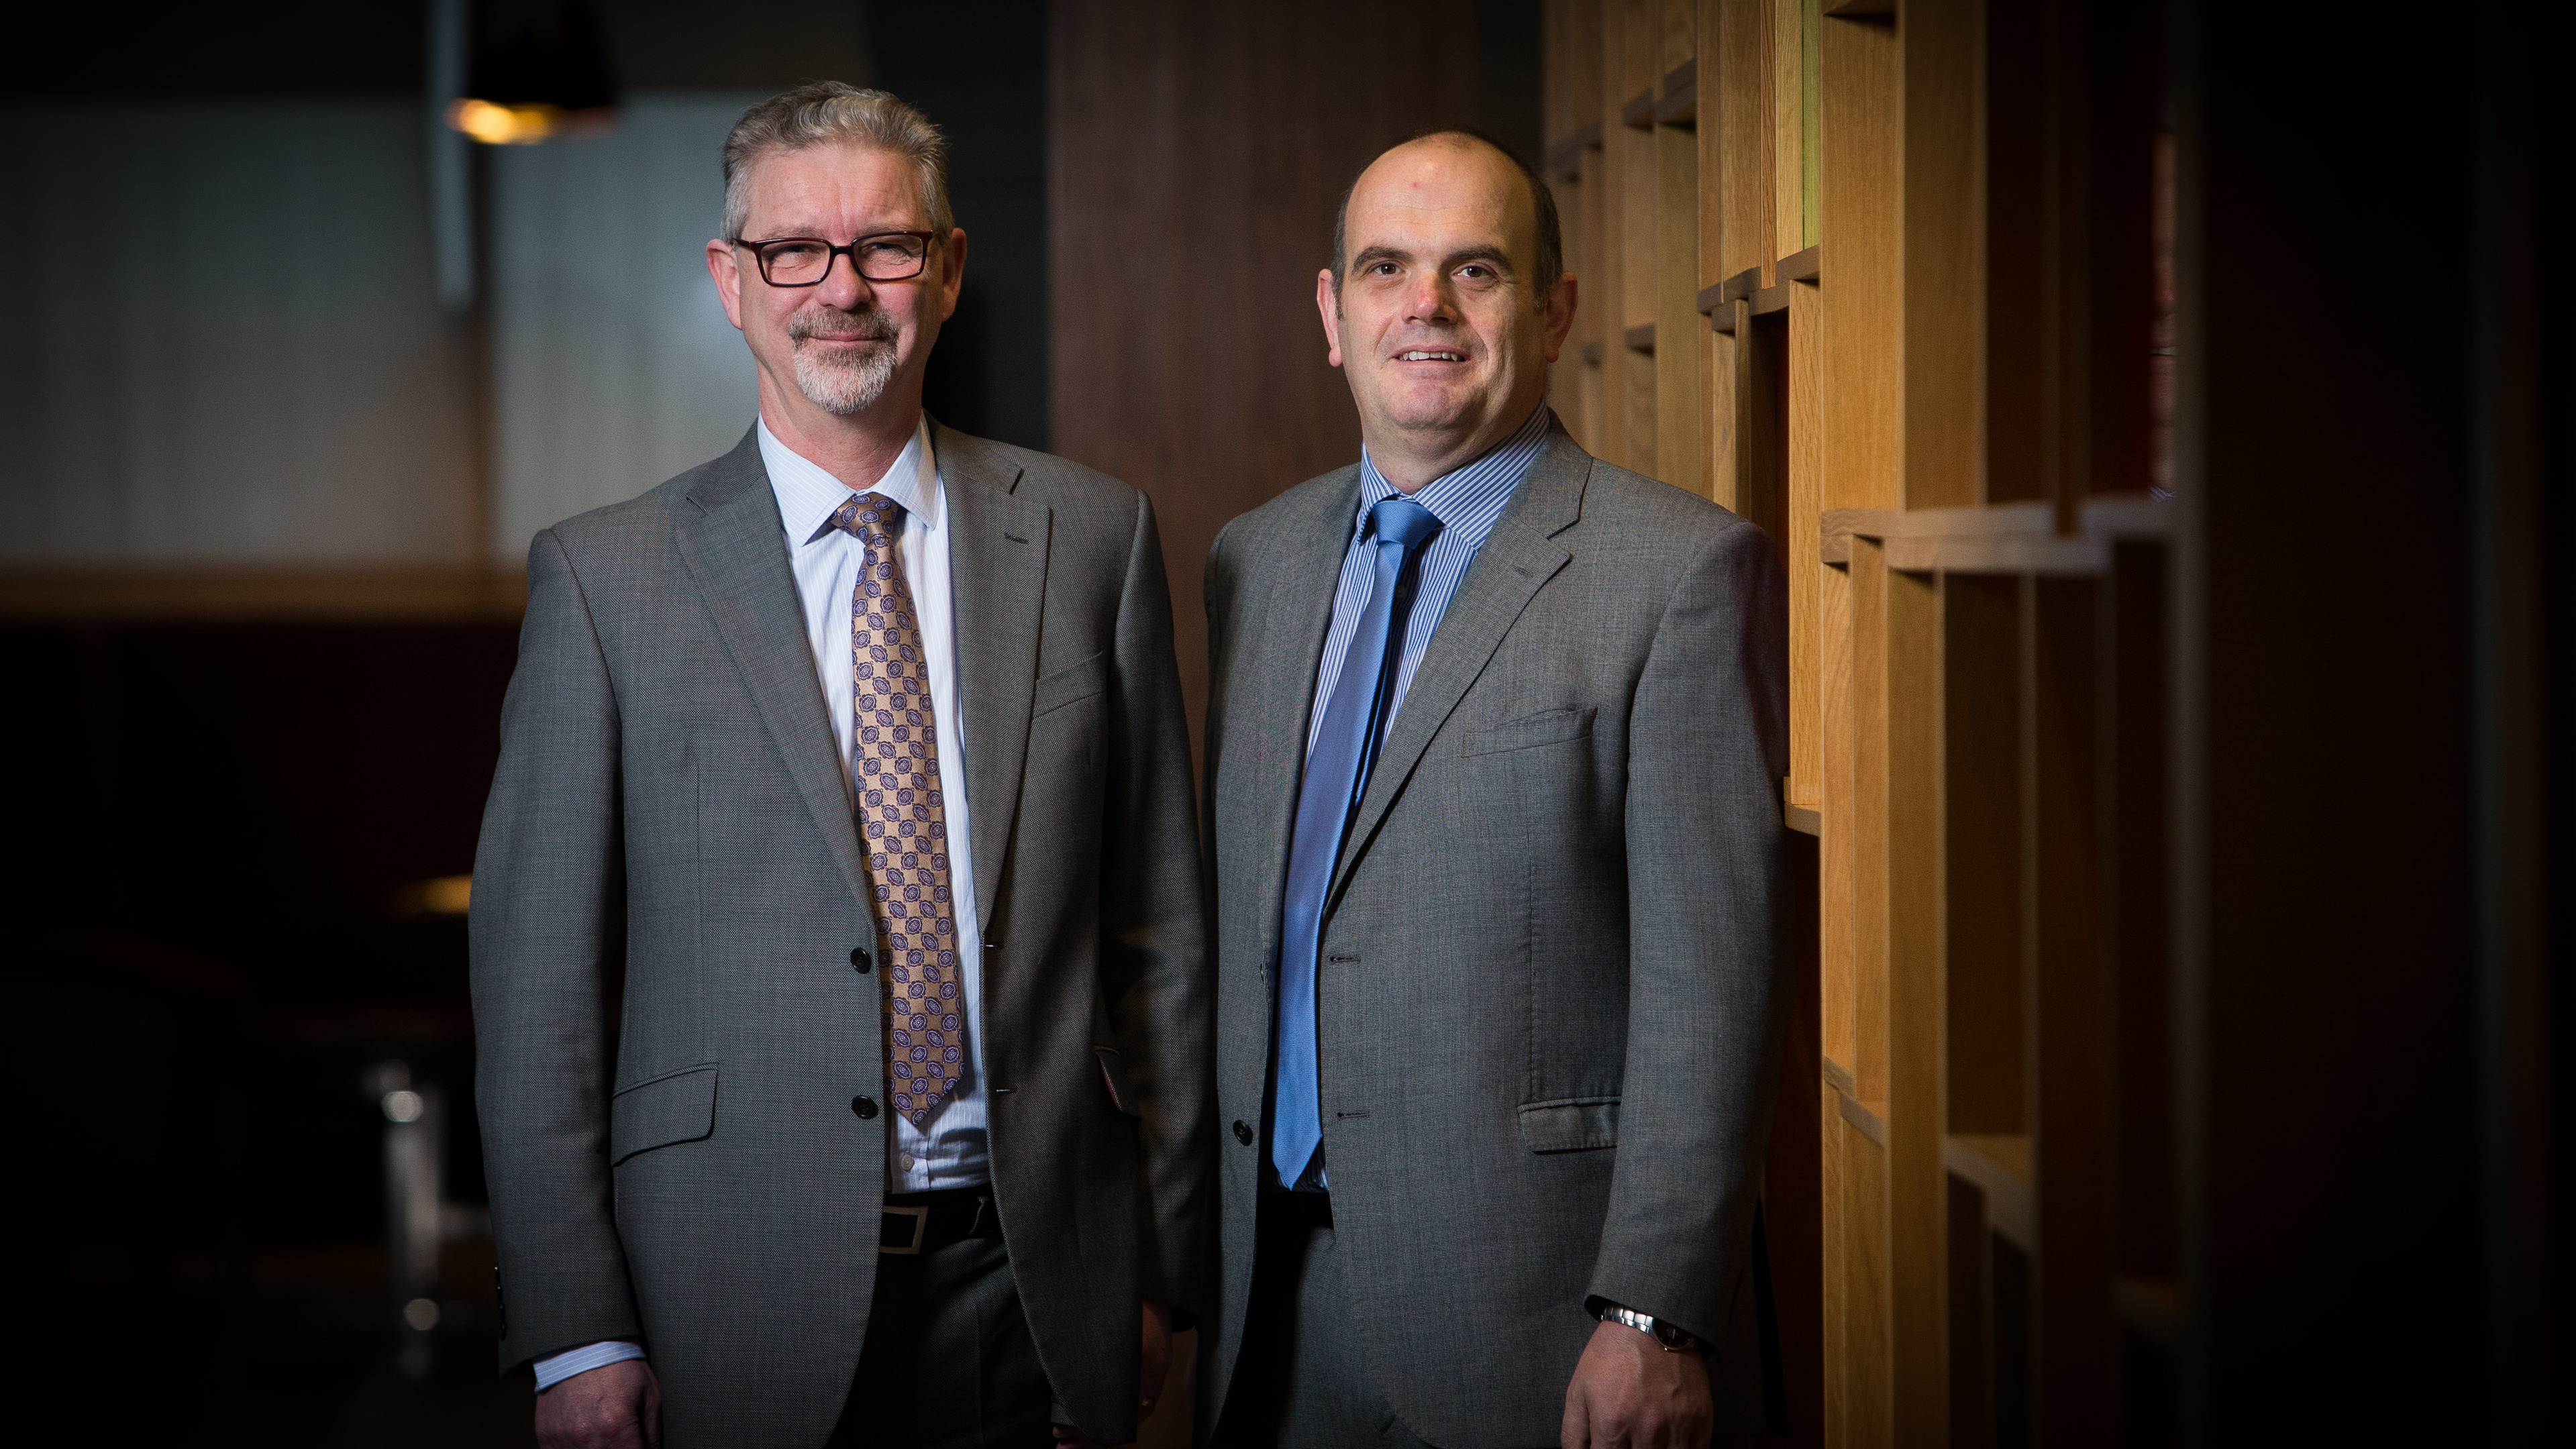 Mac managing director Graeme Reid, right, with Paul Shrieve, BV regional chief executive of North Sea offshore operations